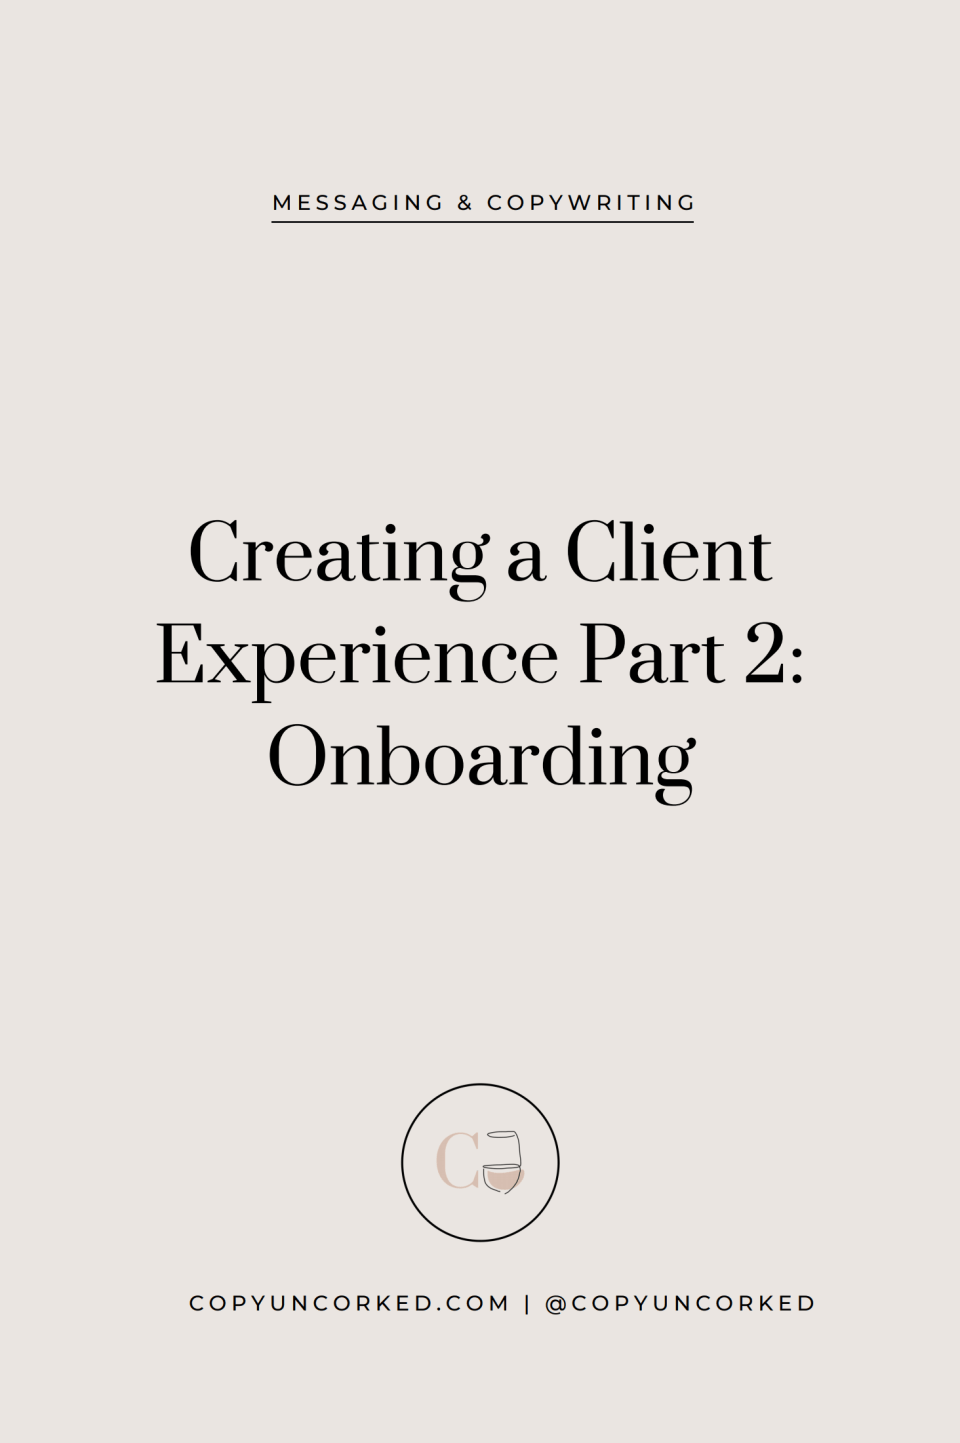 Creating a Client Experience - Part 2: Onboarding - copyuncorked.com